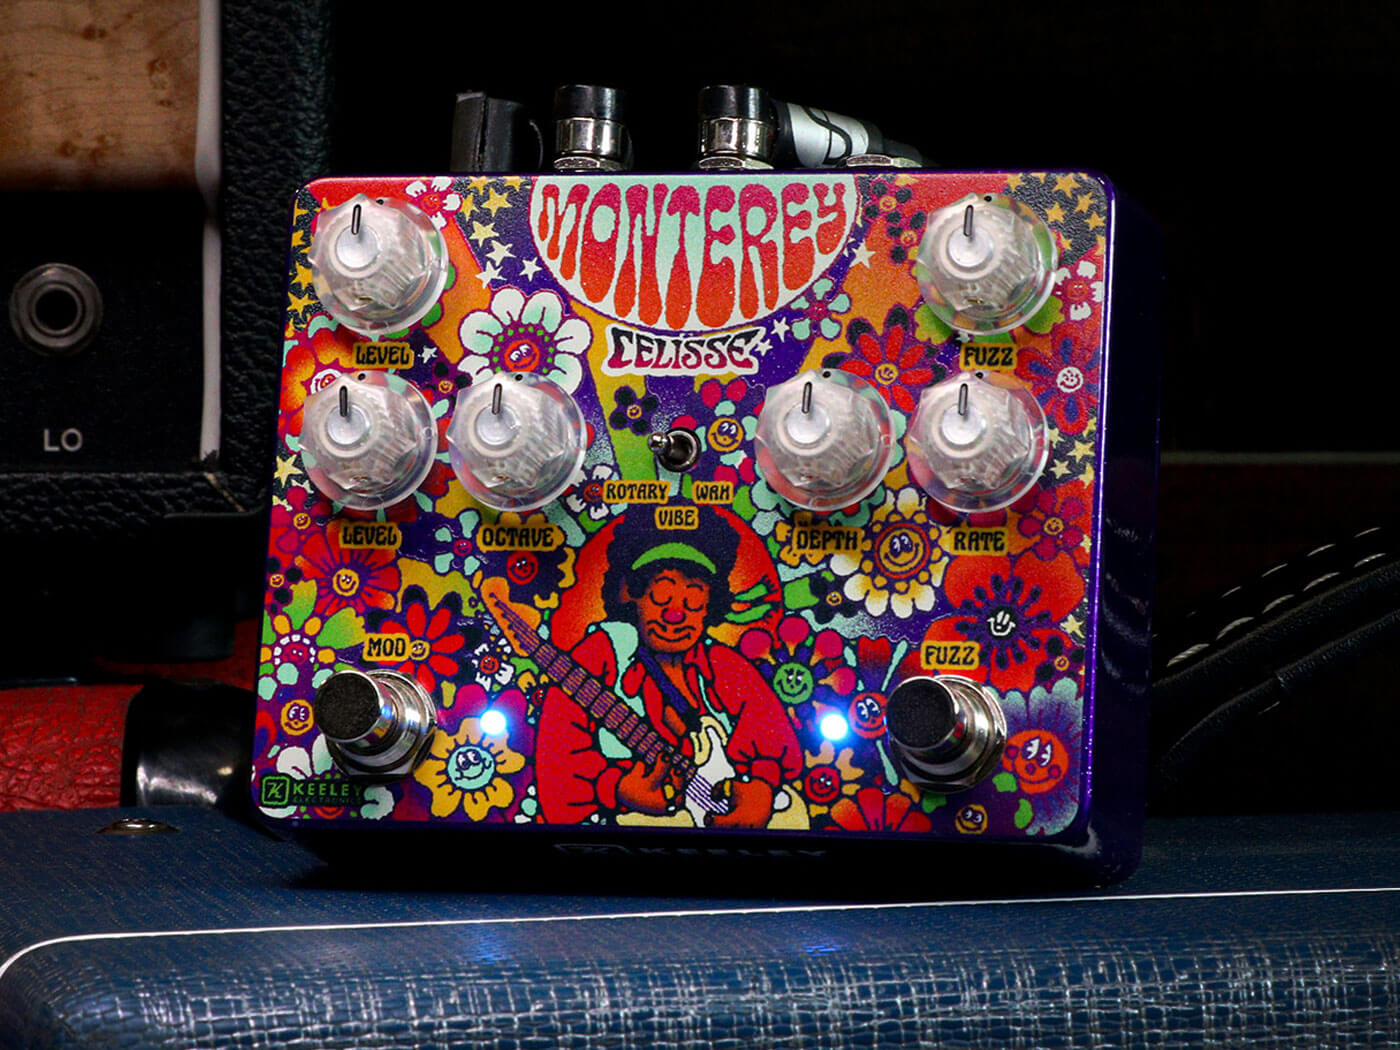 Keeley Electronics unveils the Celisse Artist edition of the Monterey rotary fuzz vibe